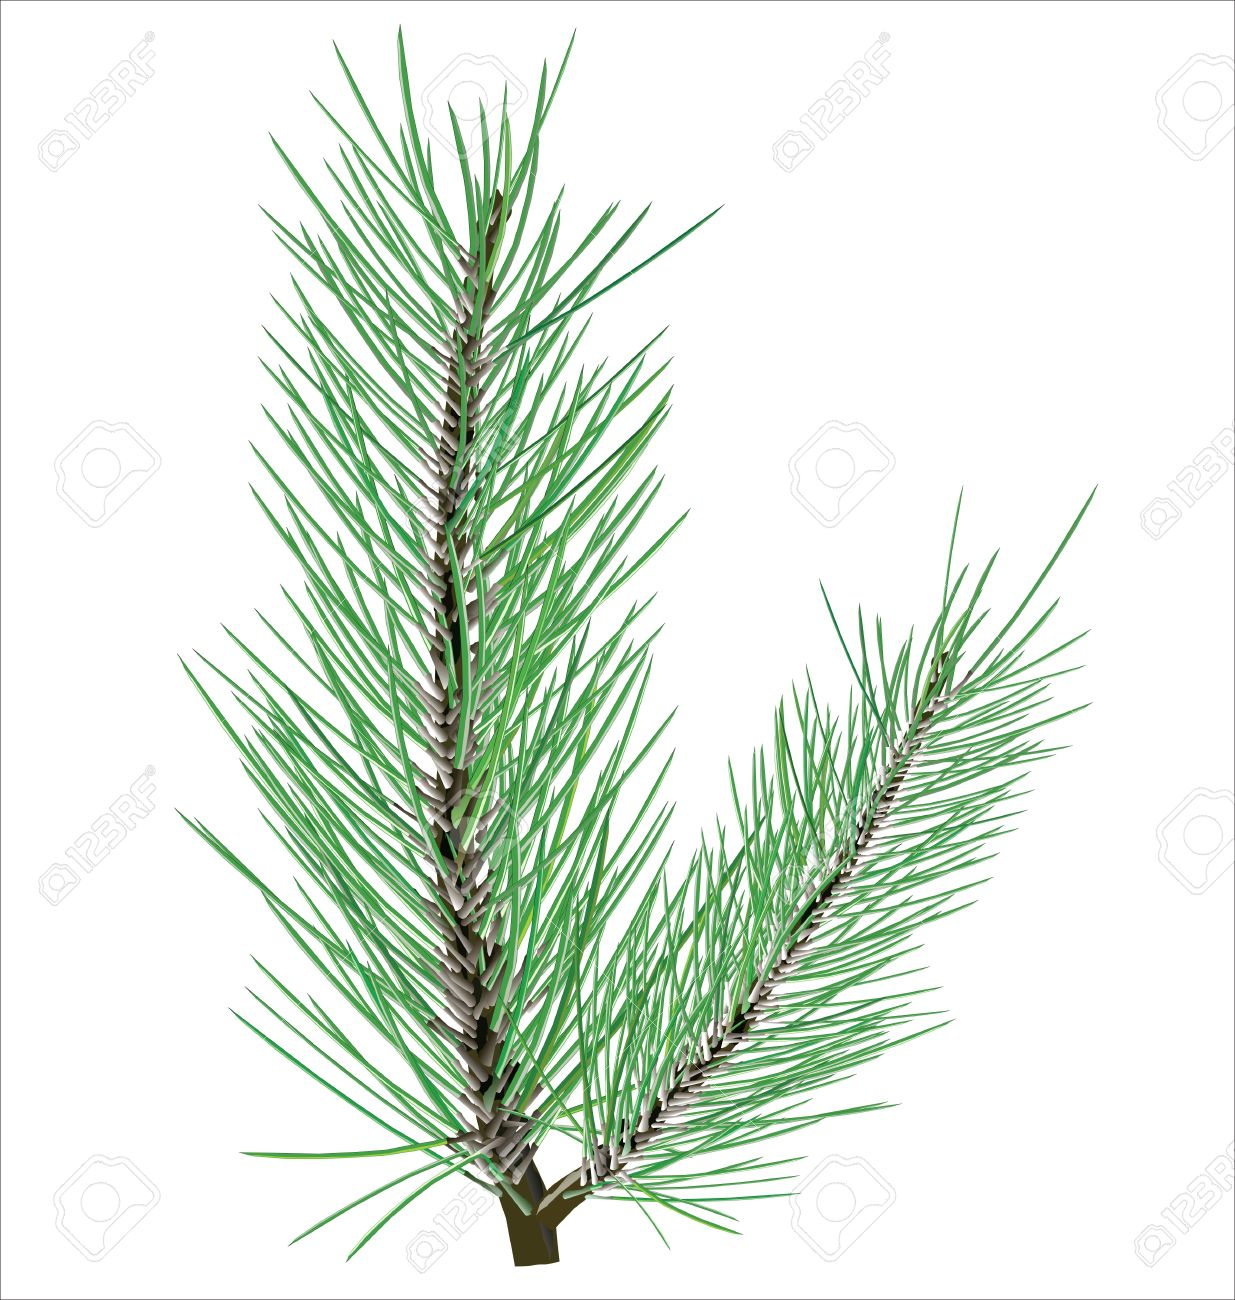 Pine Branch On White Background Royalty Free Cliparts, Vectors.